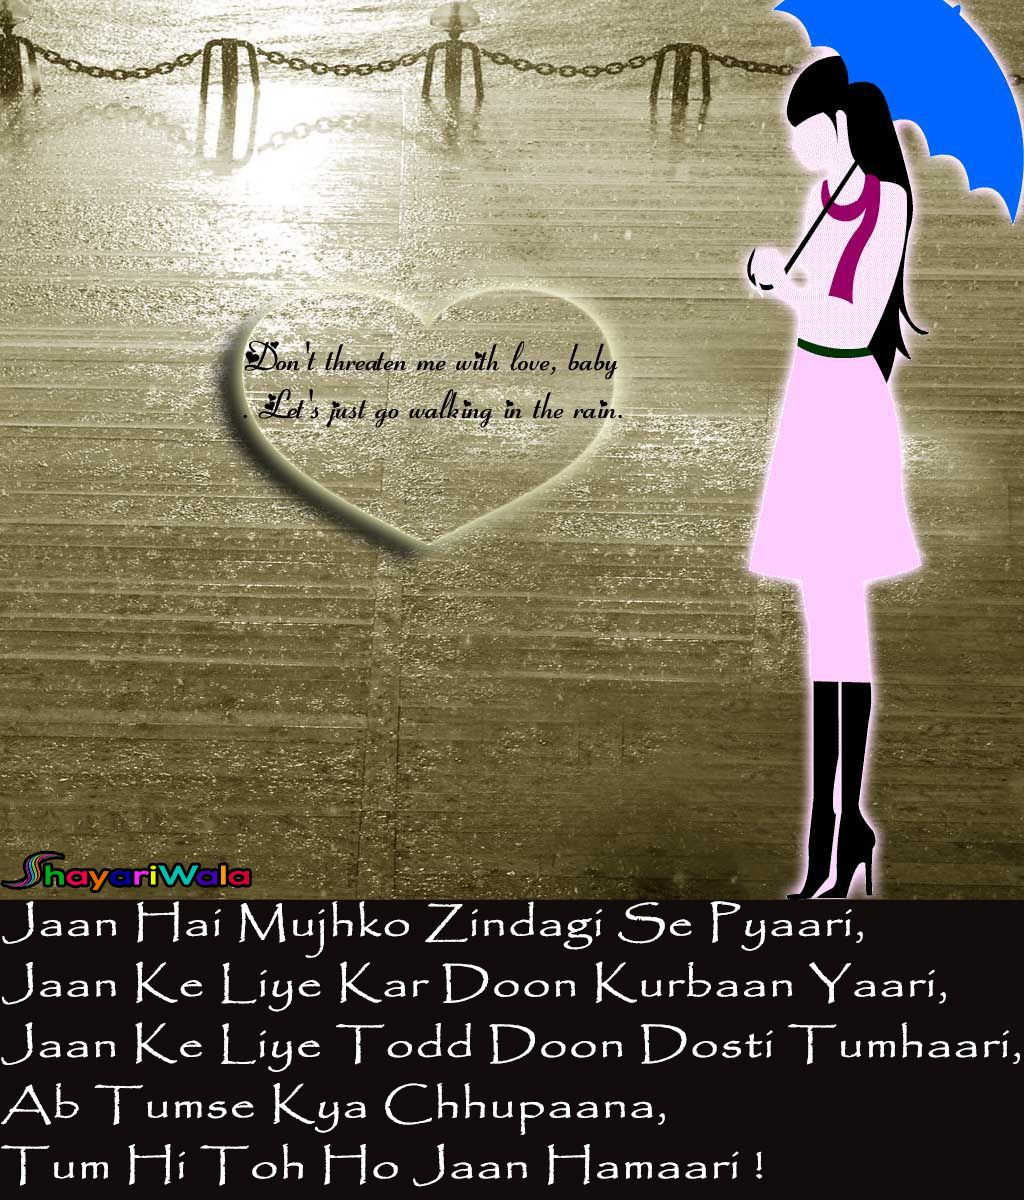 Quotes On Friendship And Love In Hindi: Friendship Quotes, Friendship Sms, Friendship, Friendship